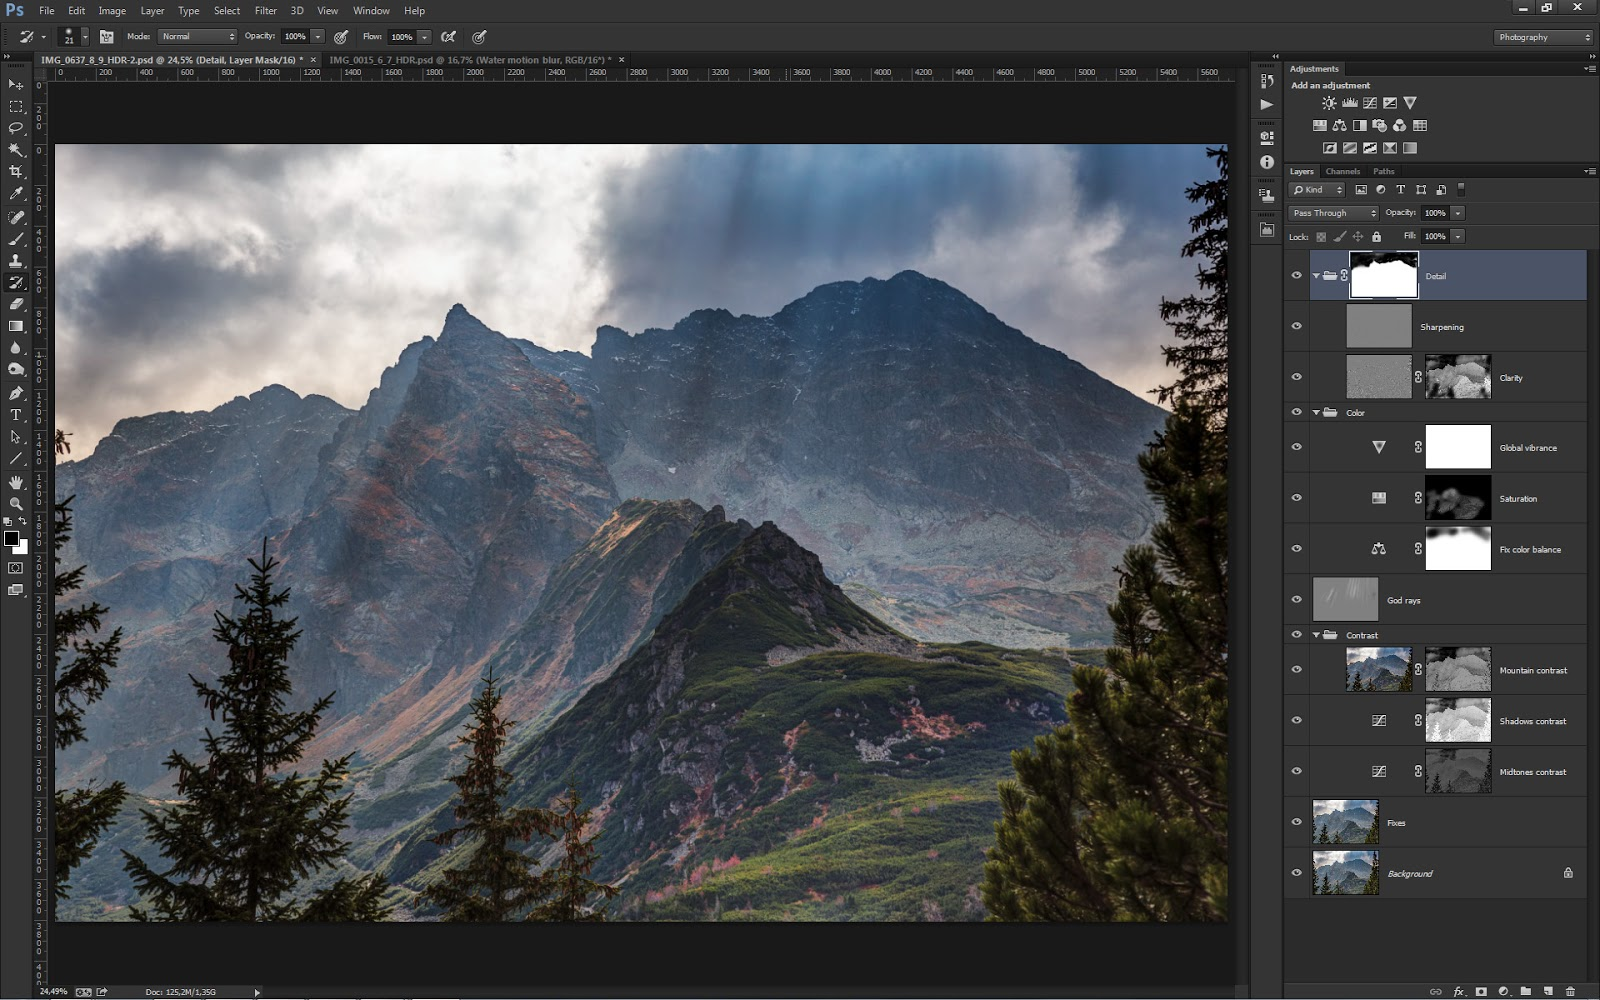 Post-processing in Photoshop